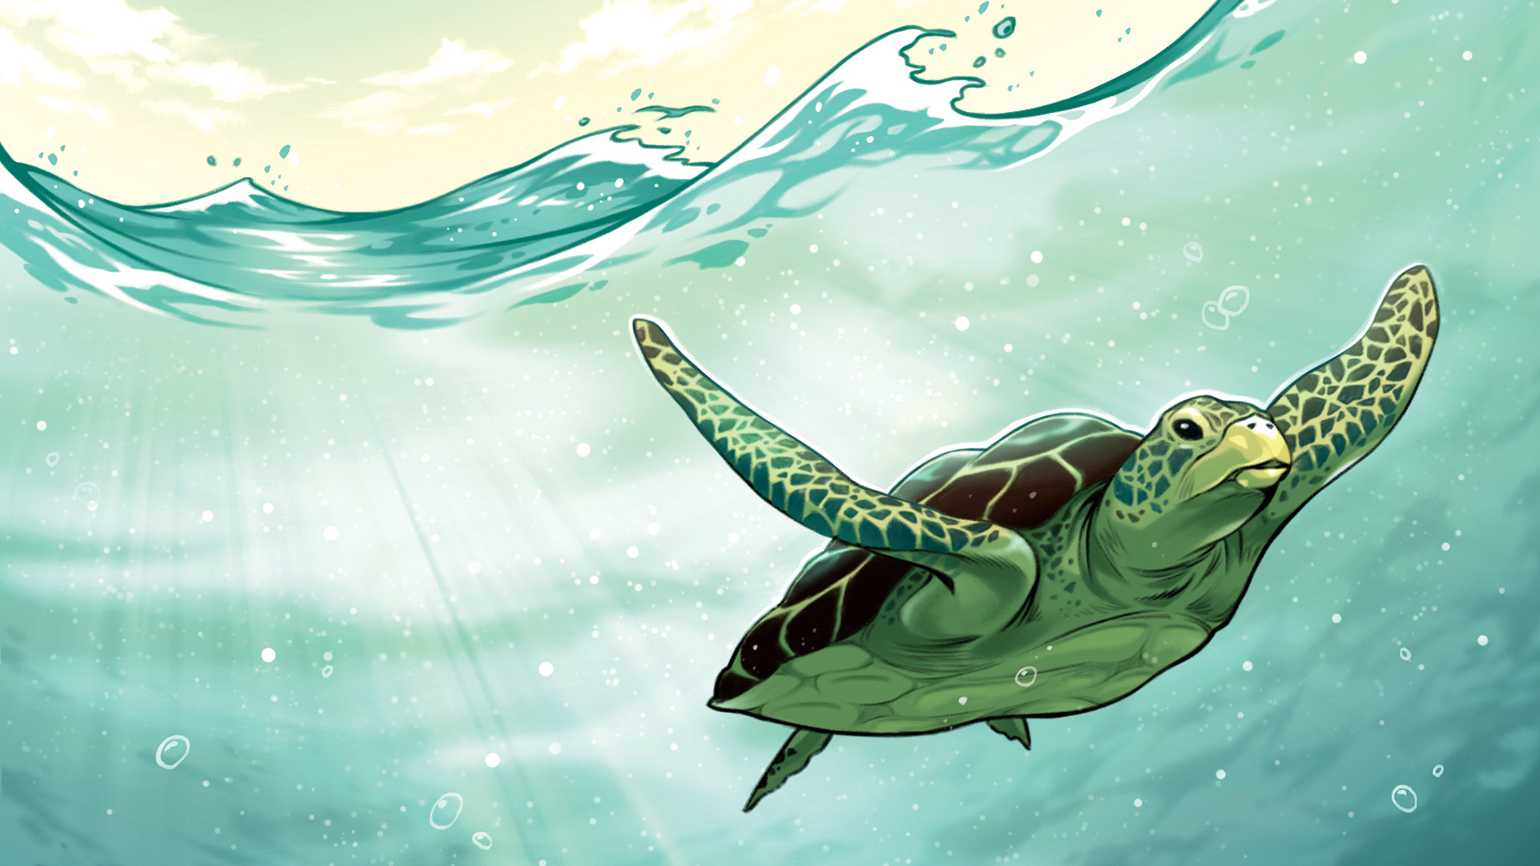 An artist's rendering of a sea turtle gliding along underwater